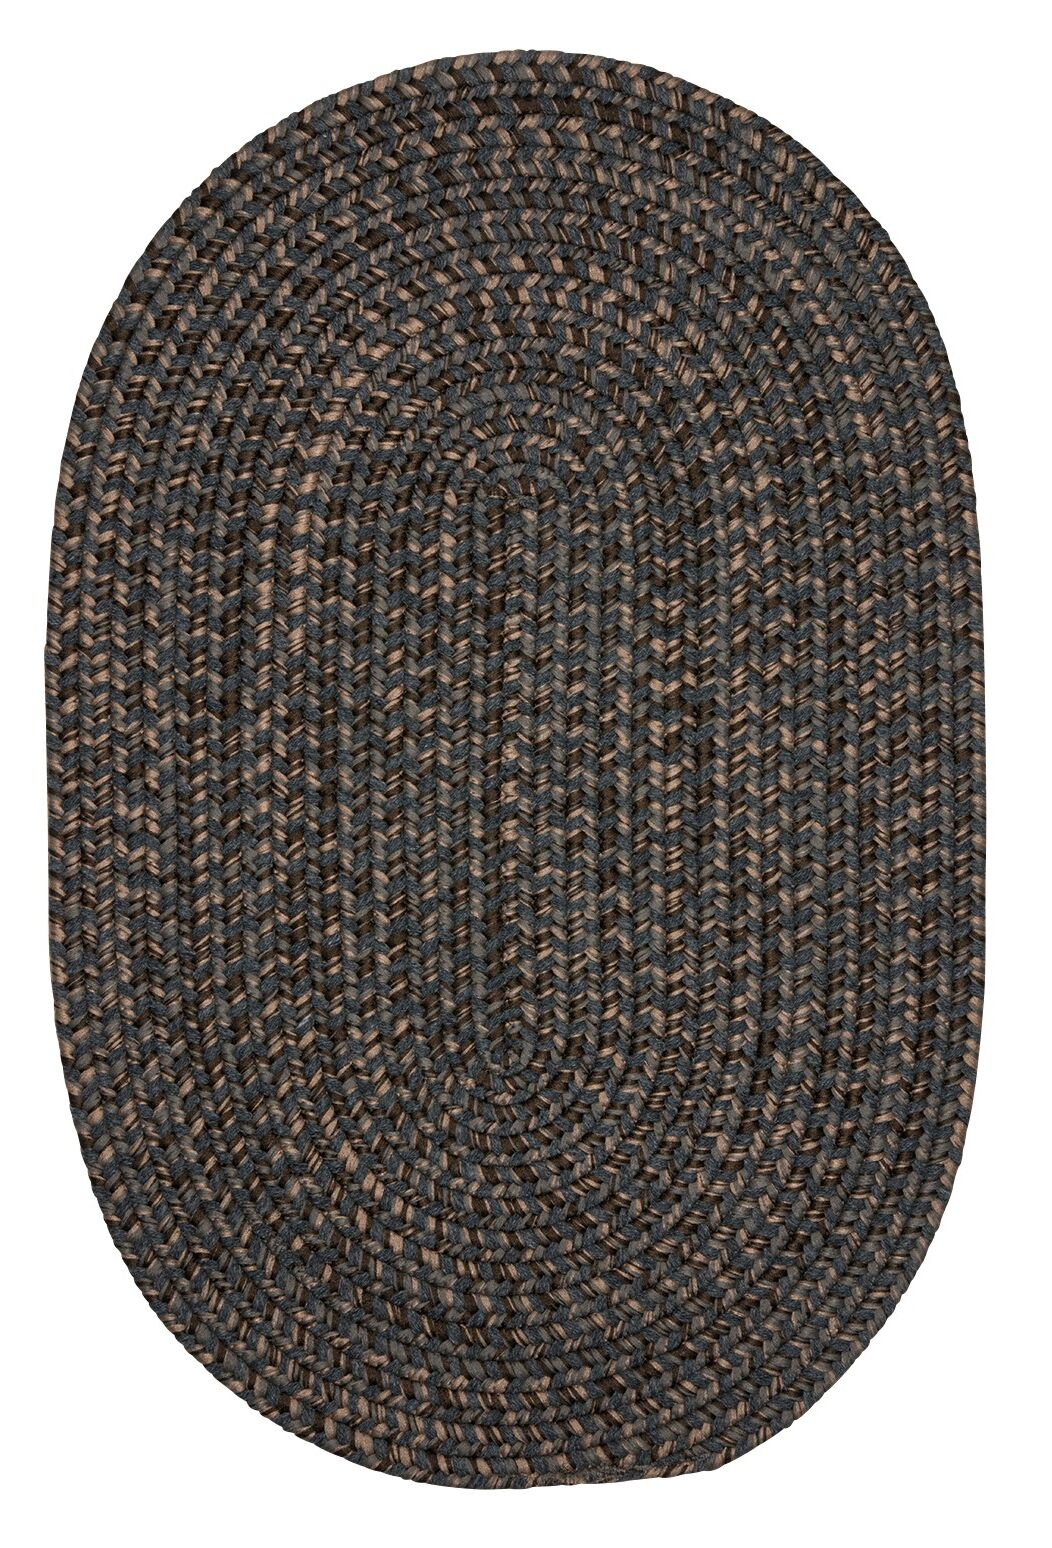 Abey Charcoal Area Rug Rug Size: Oval Runner 2' x 6'